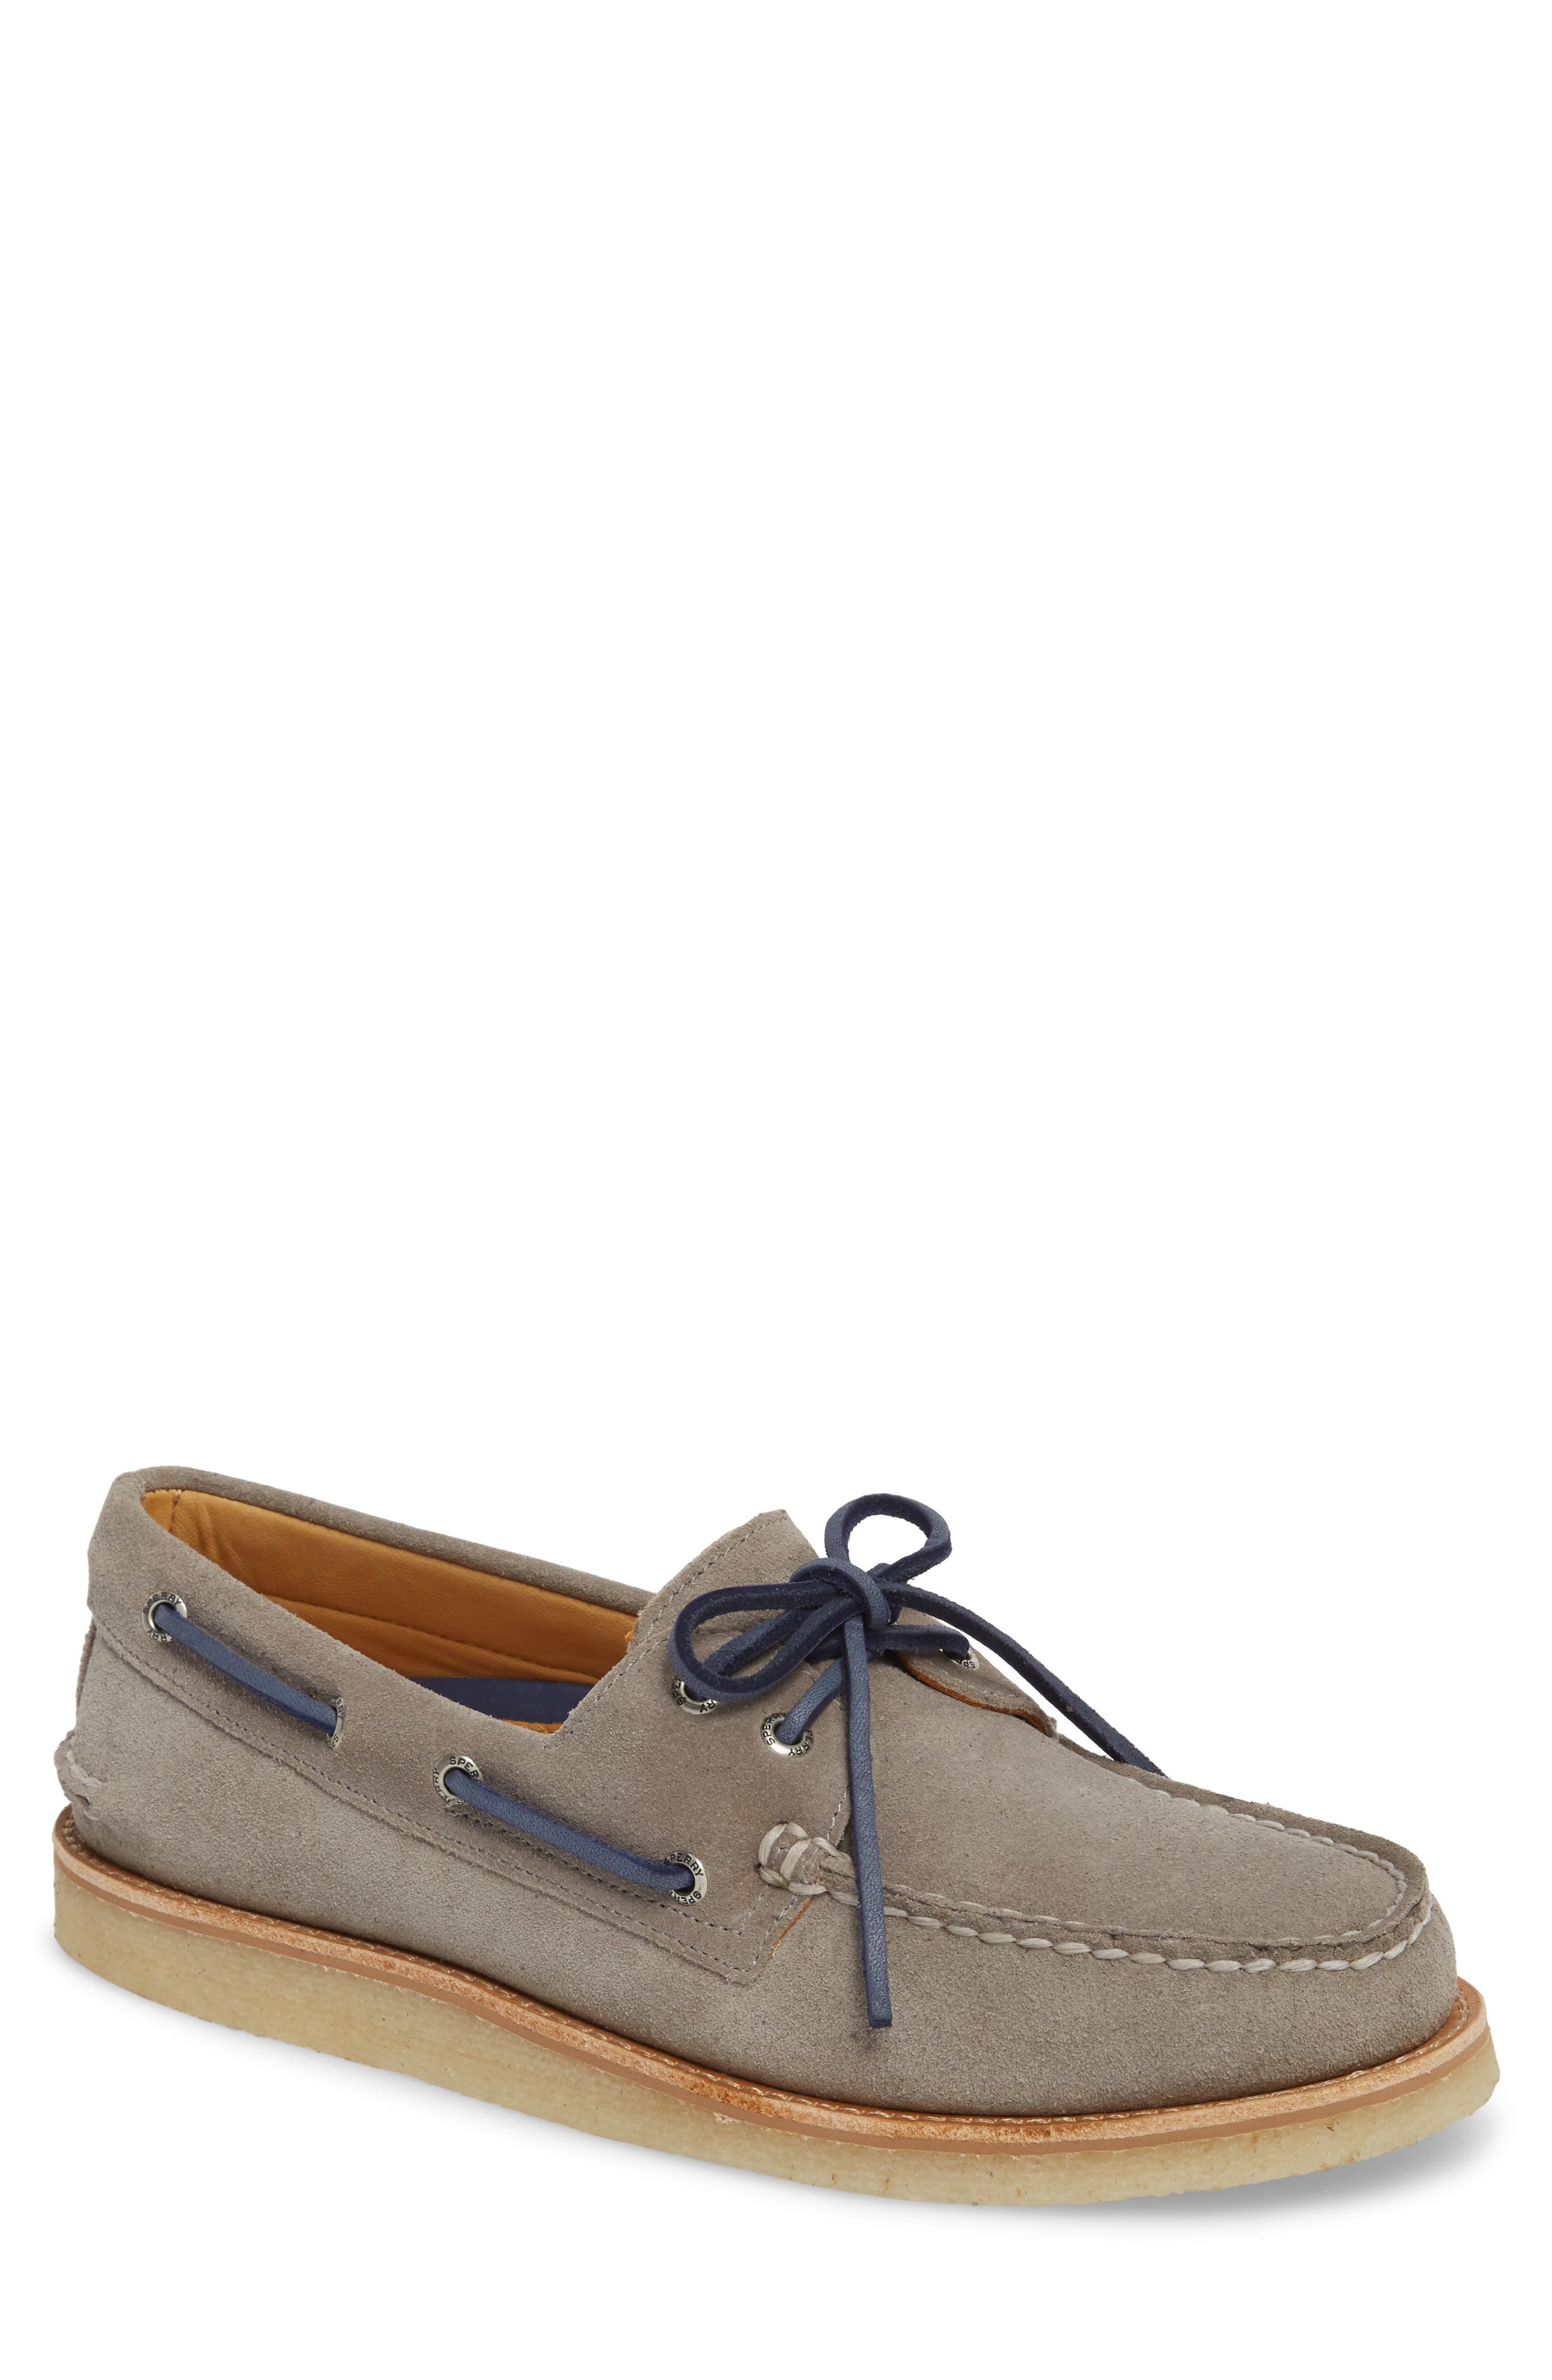 Gold Cup AO 2-Eye Boat Shoe,                         Main,                         color, Grey Leather